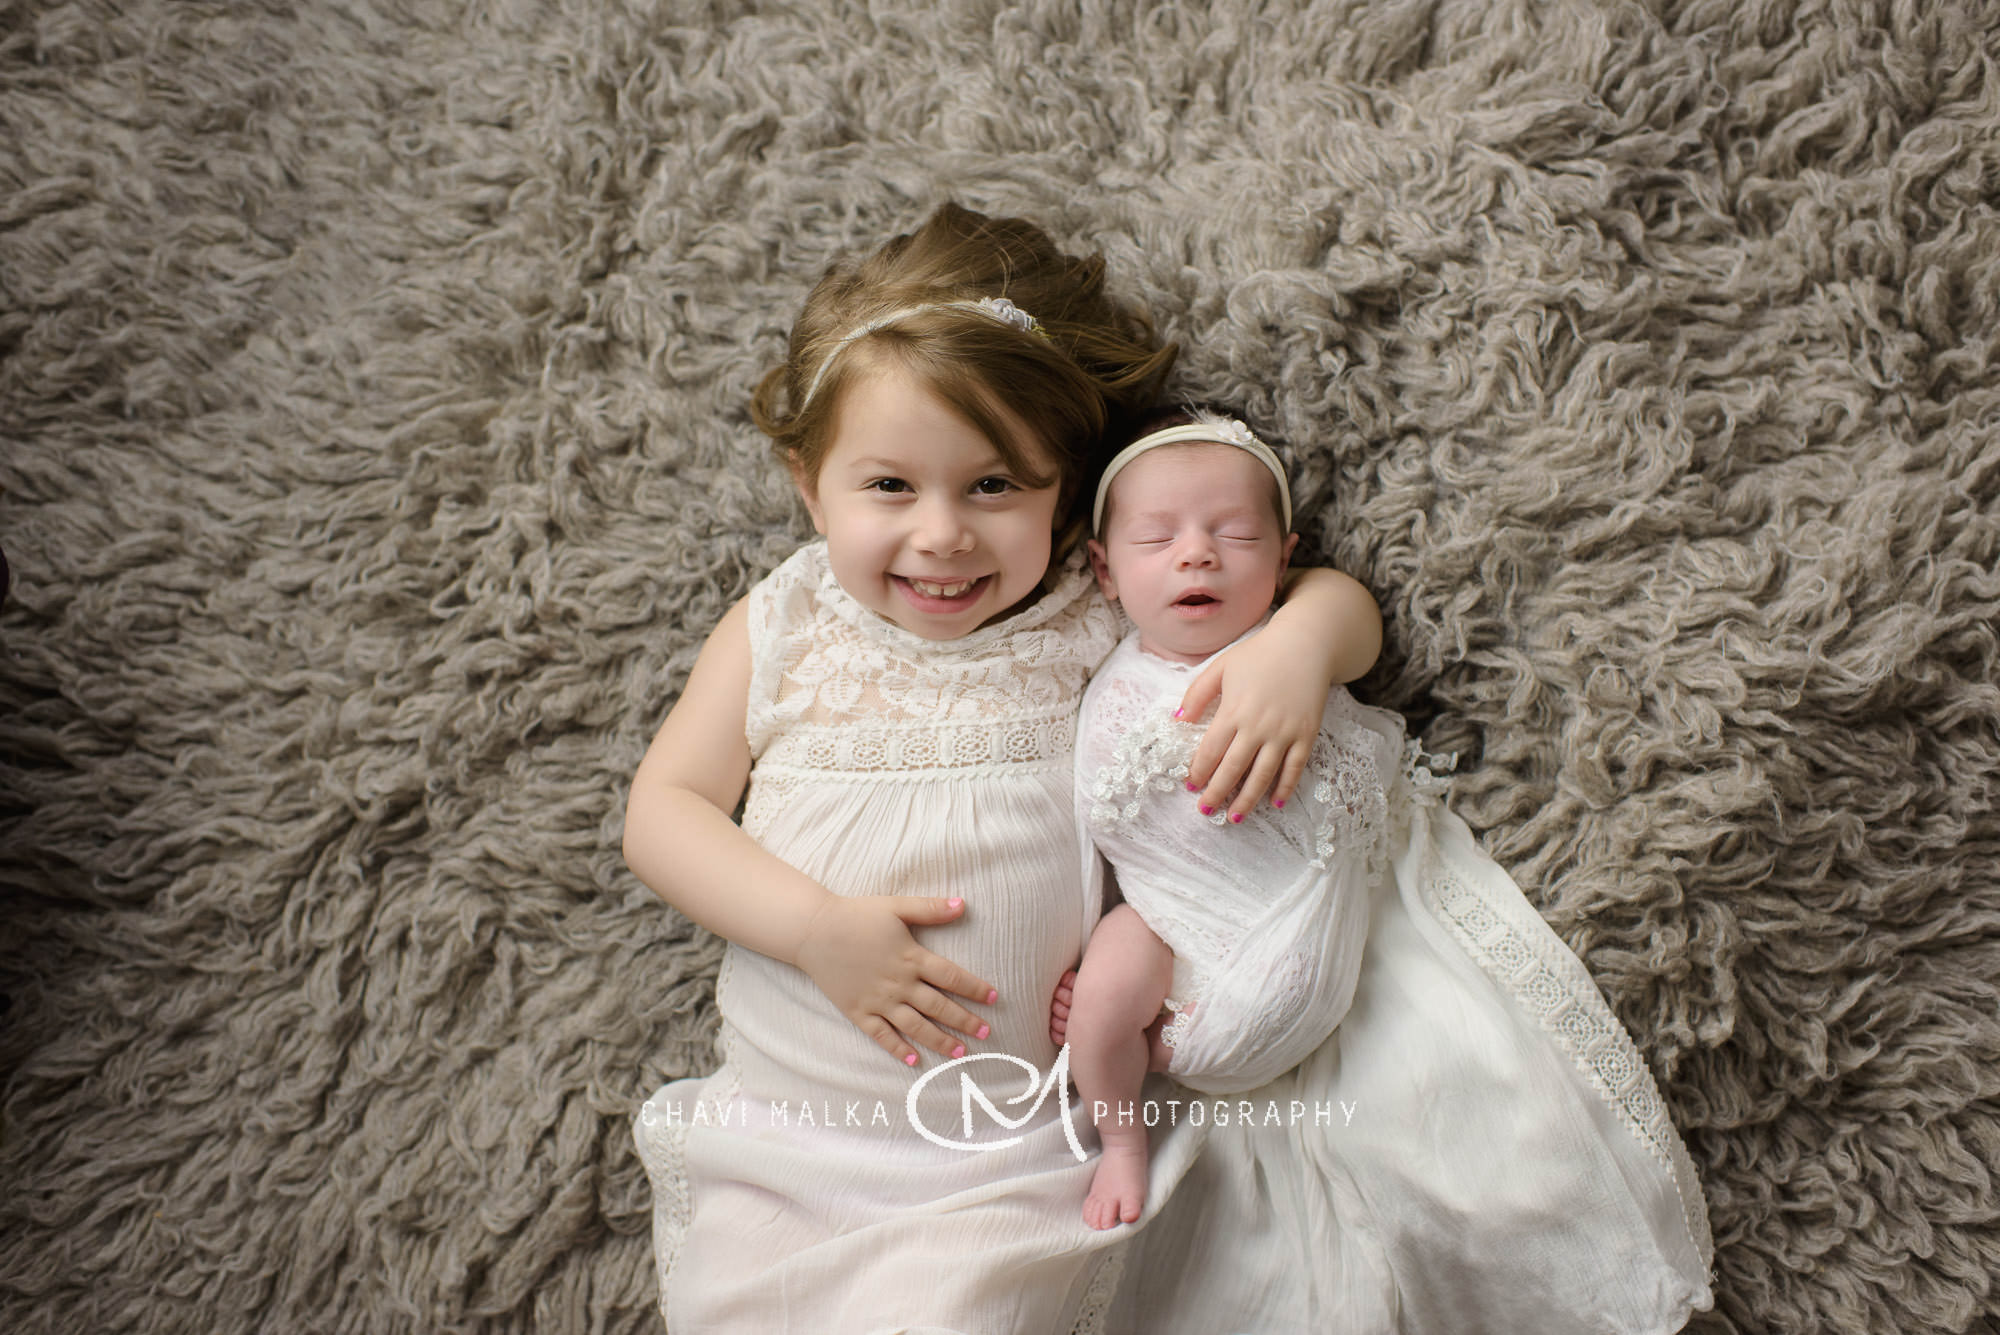 Manhasset Newborn Photographer | Precious Little Sisters